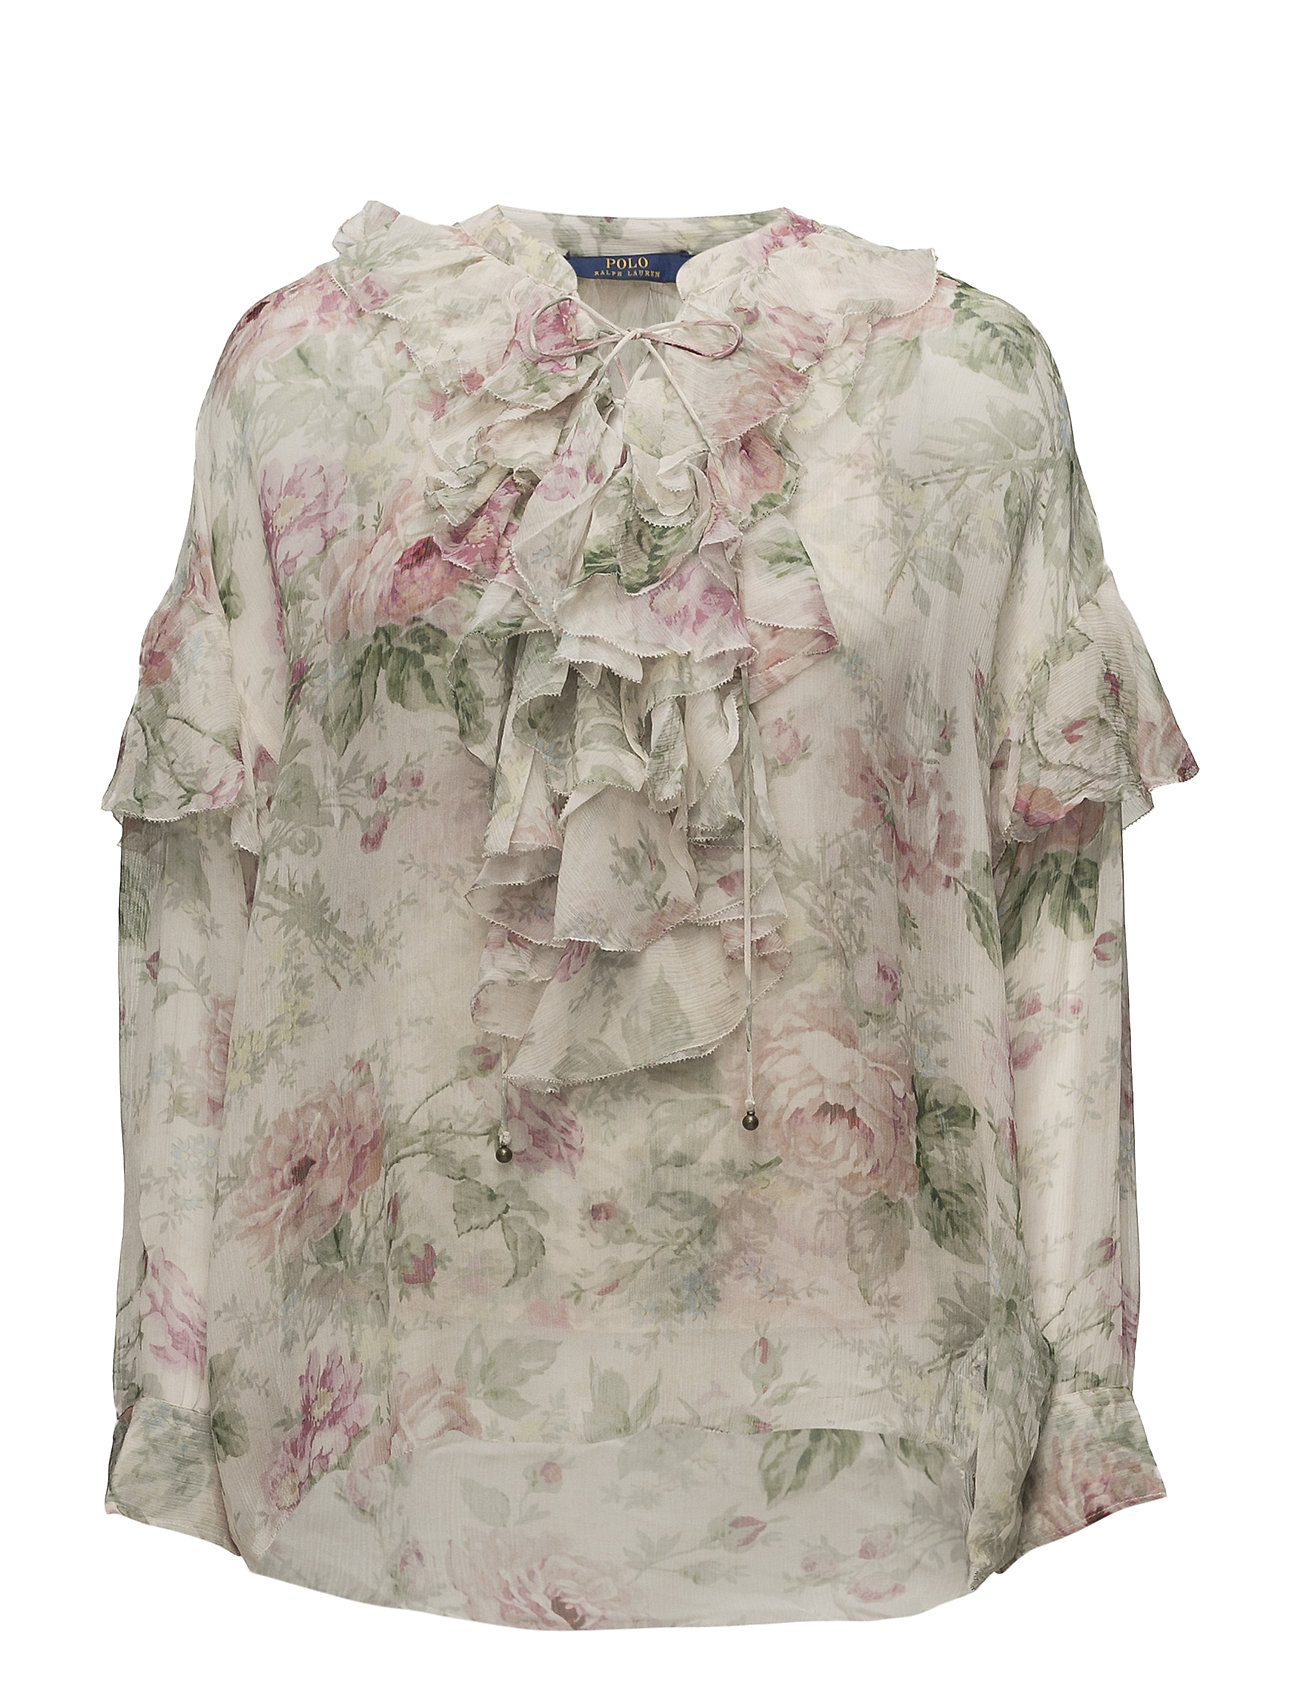 40238aa46142a Floral Lace-up Silk Blouse (Sonoma Floral) (191.95 €) - Polo Ralph ...